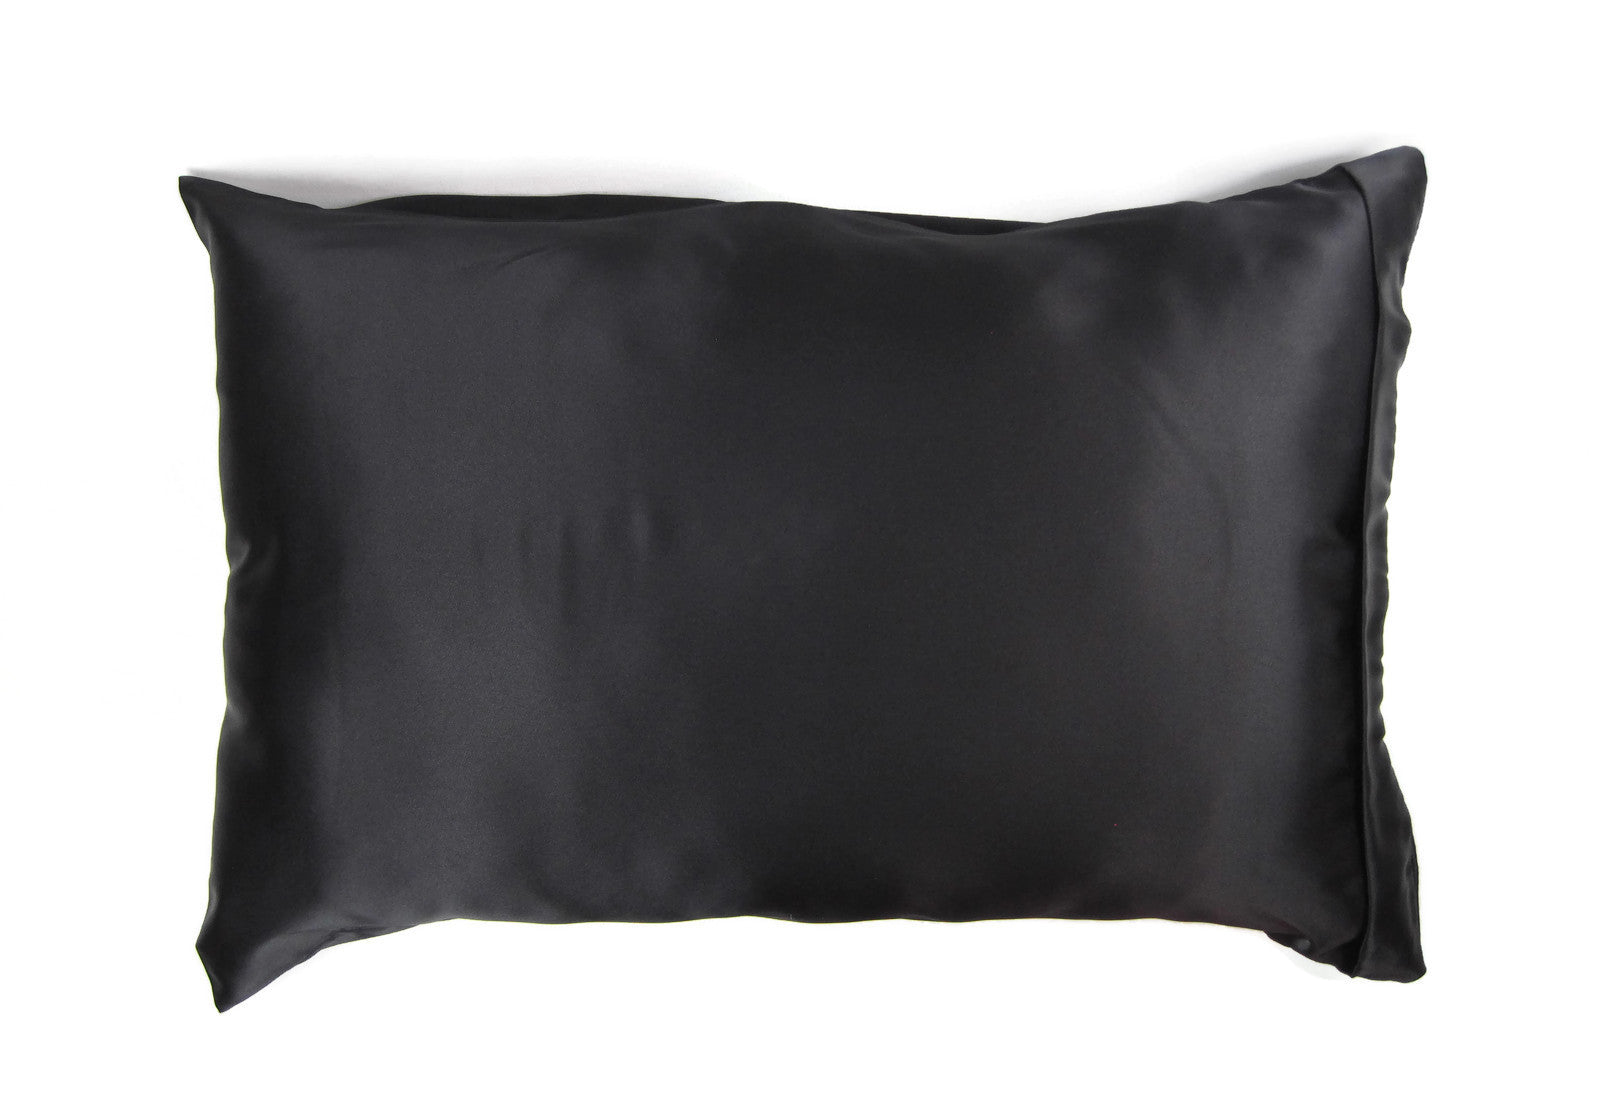 Luxe Satin Zippered Pillowcase - Ebony Nites (Black)